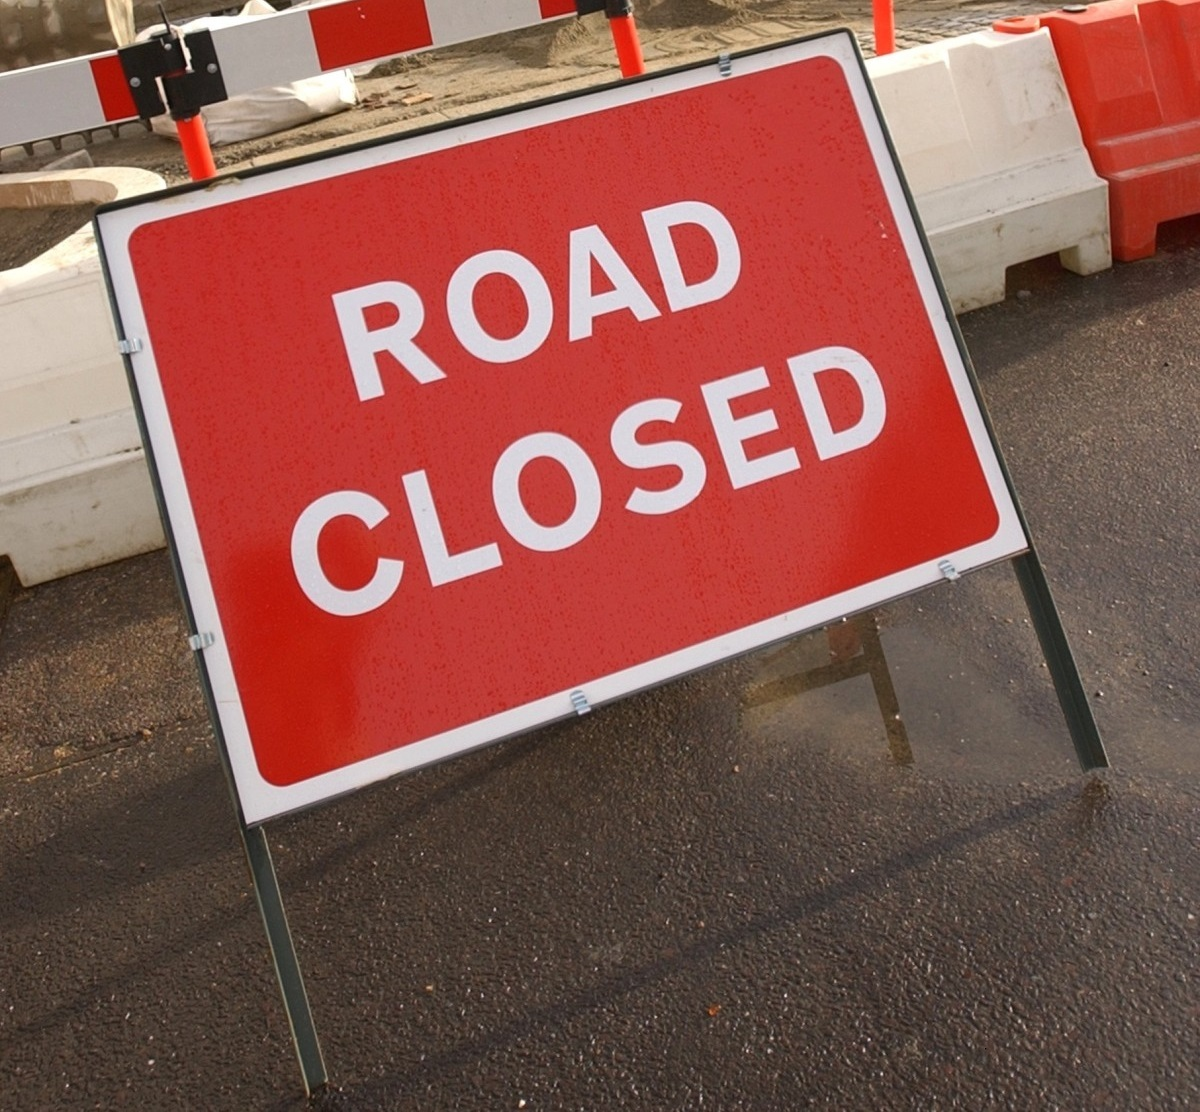 A mains water leak has resulted in the closure of Summers Lane, in Totland.